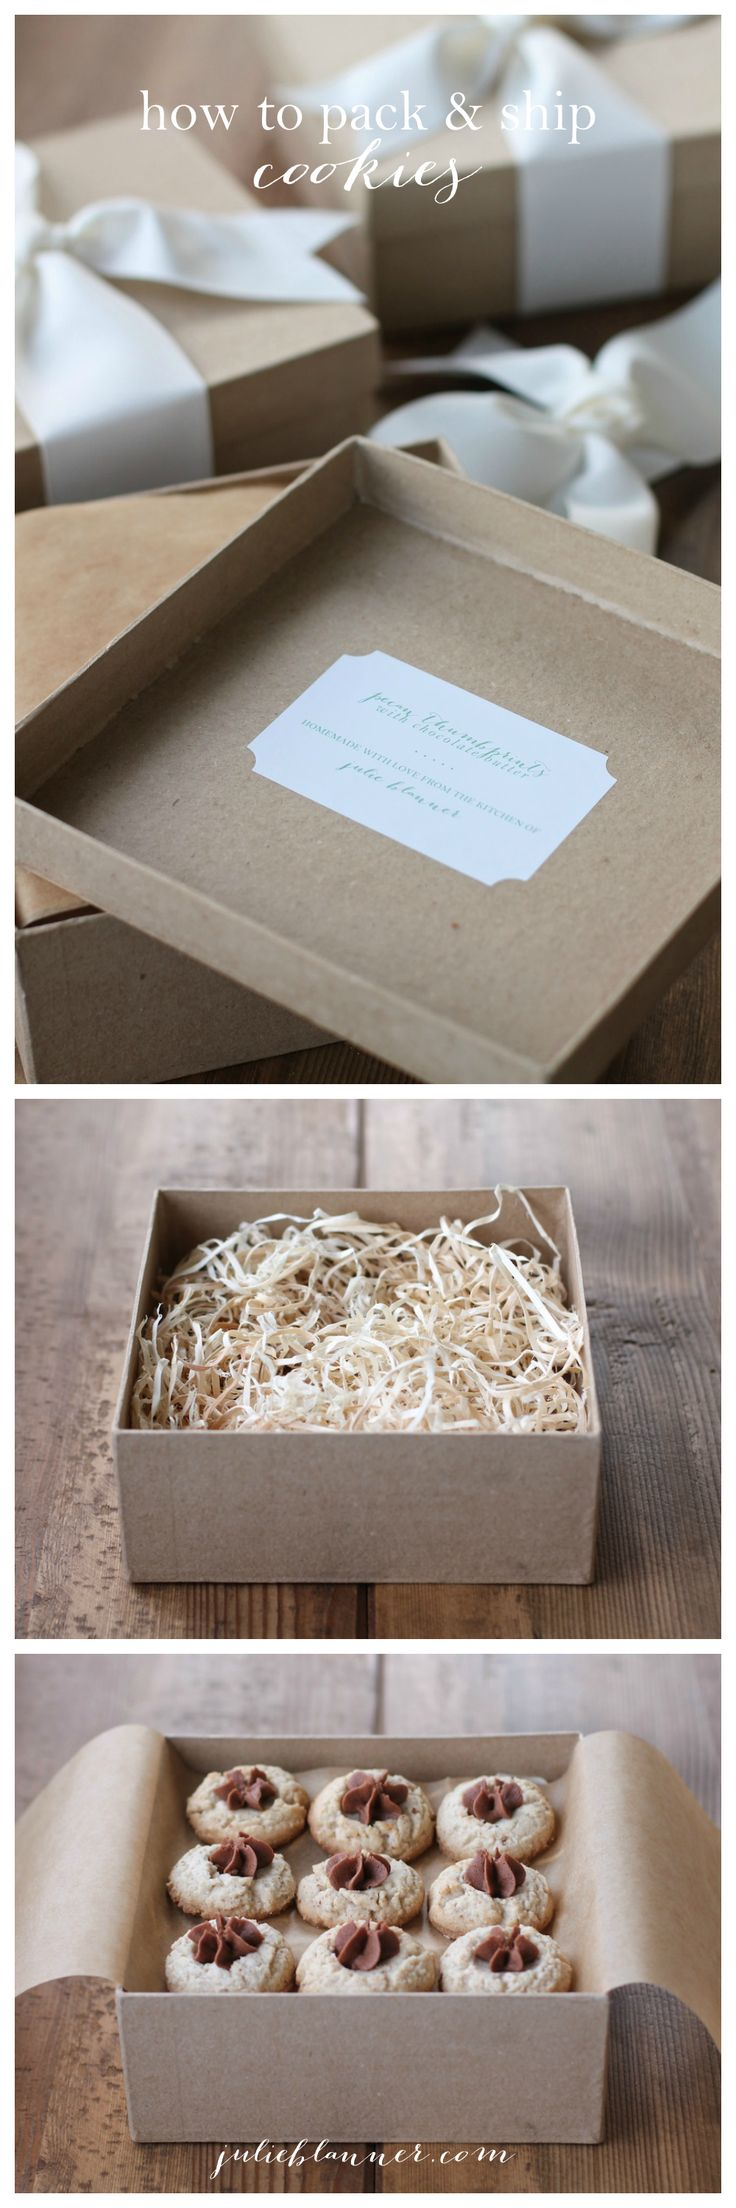 How to package & ship cookies safely & beautifully!